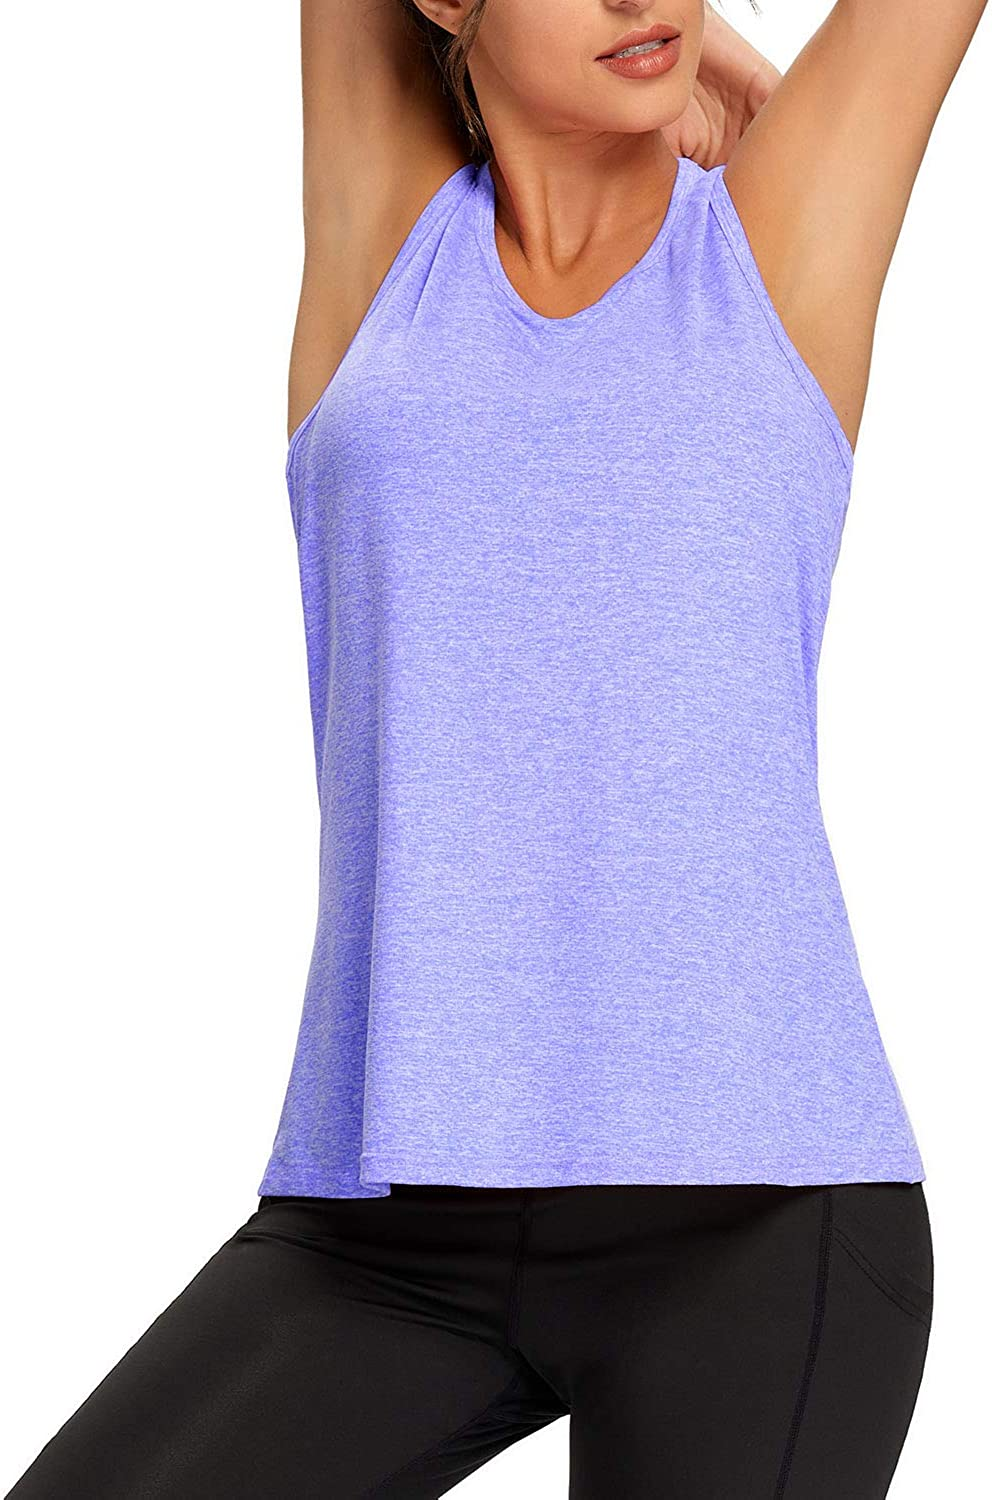 Workout Tank Tops for Women Loose Fit Yoga Shirts Mesh Back Racerback Muscle Tank Athletic Running Tops